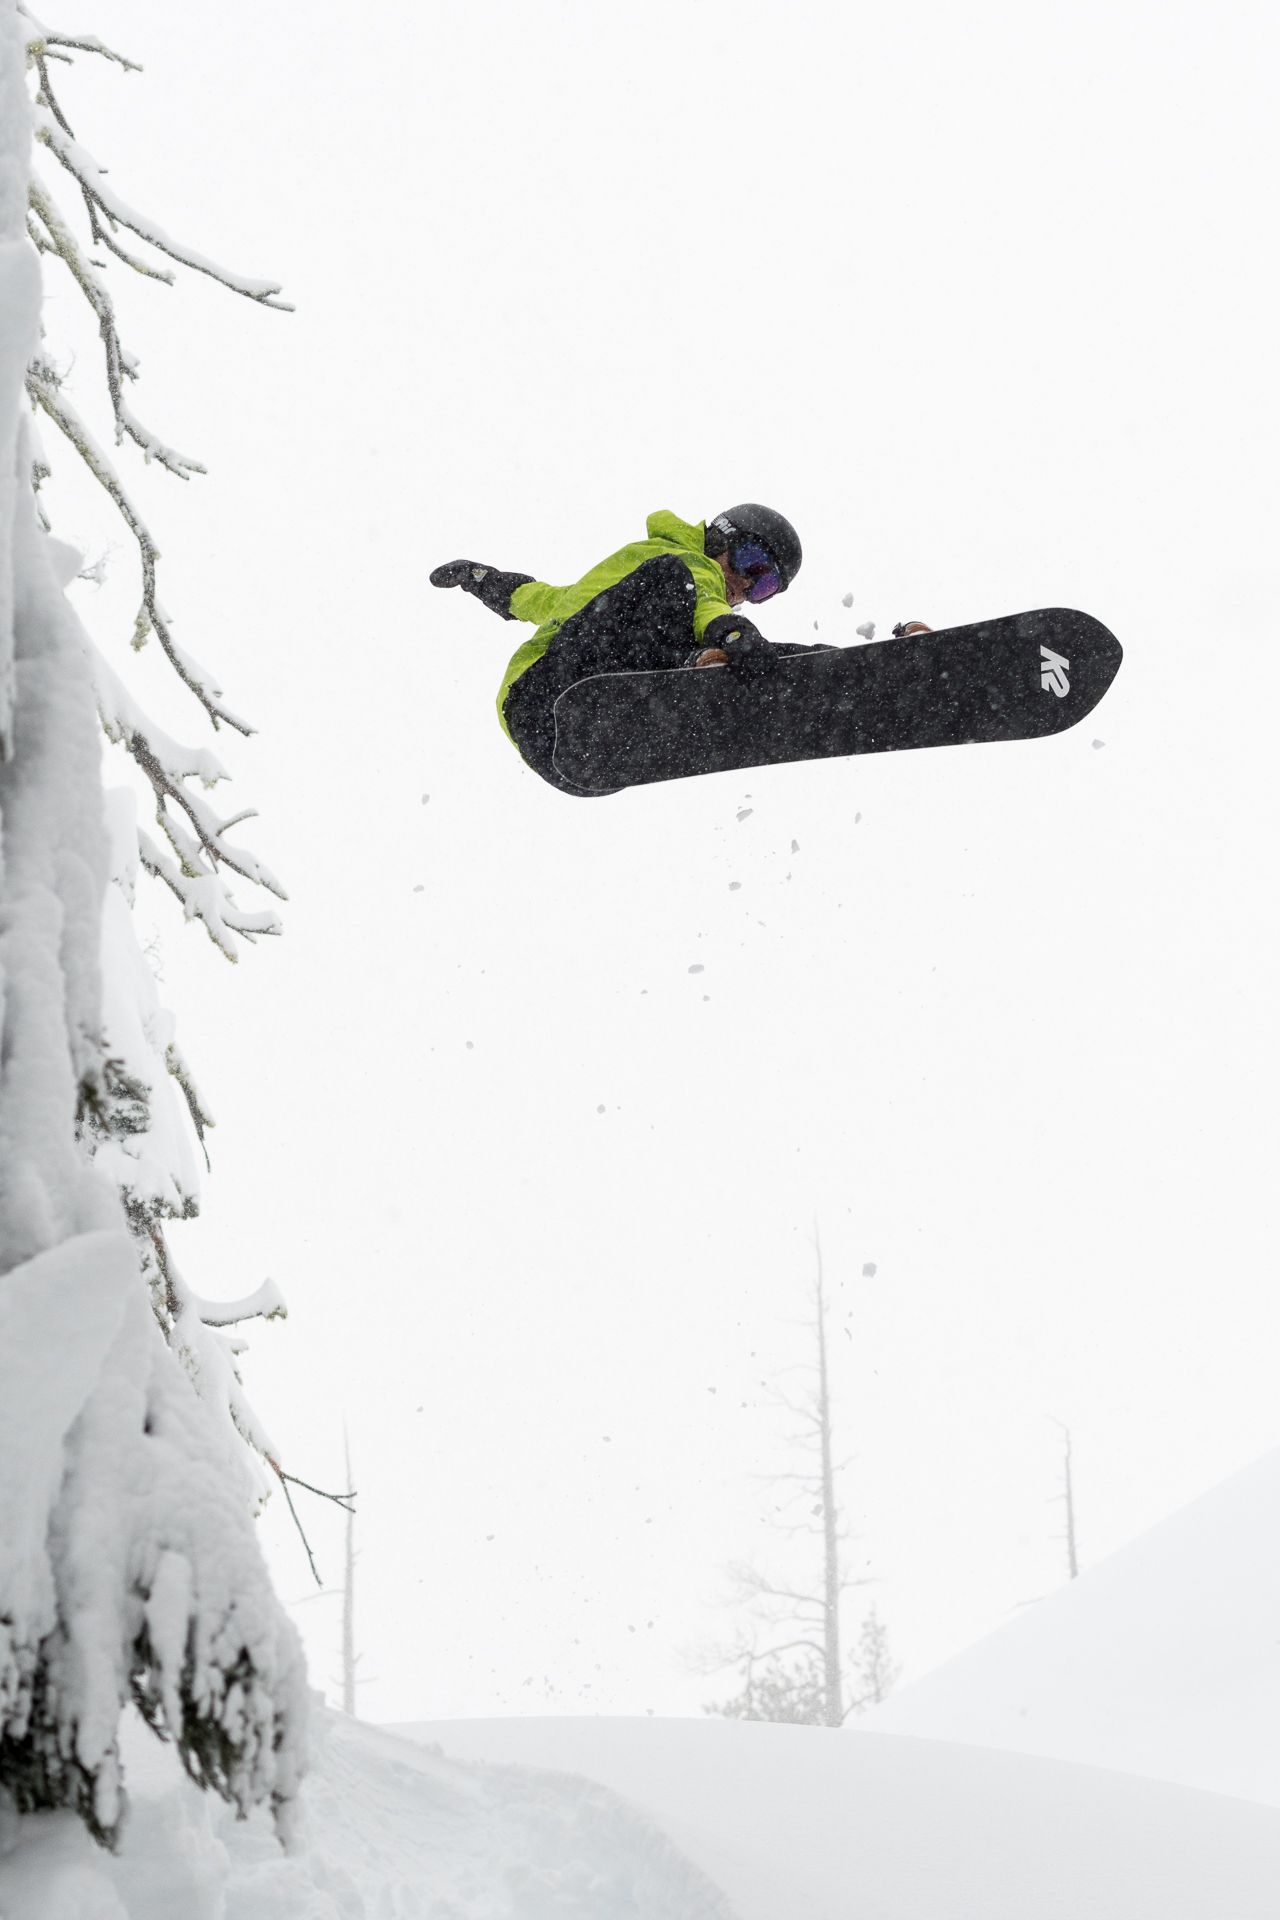 Tim Eddy, front 3. Donner Pass backcountry, CA.